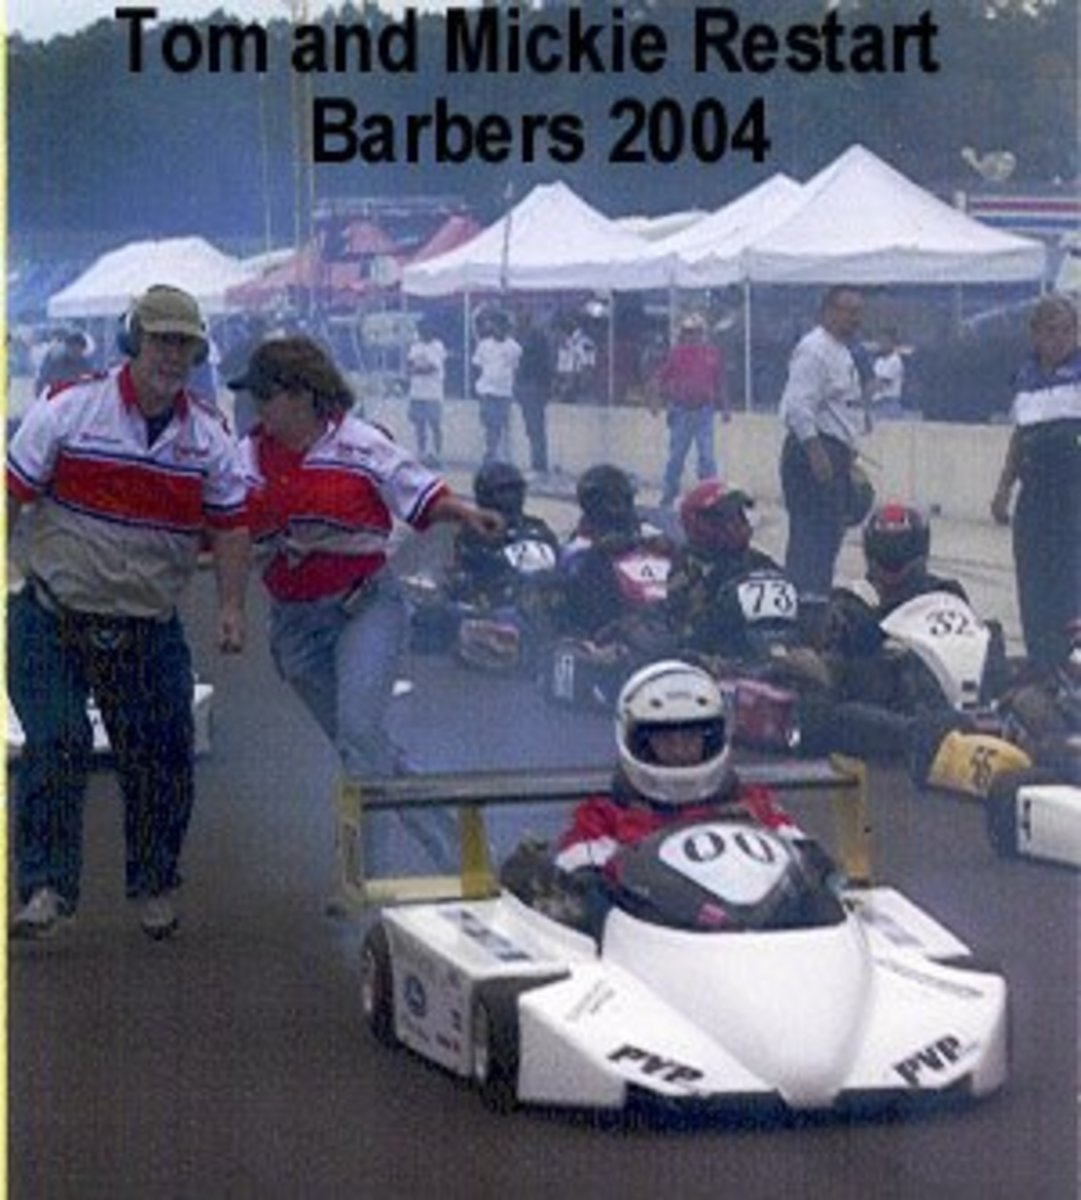 That is me (behind the kart) running to get out of the way.